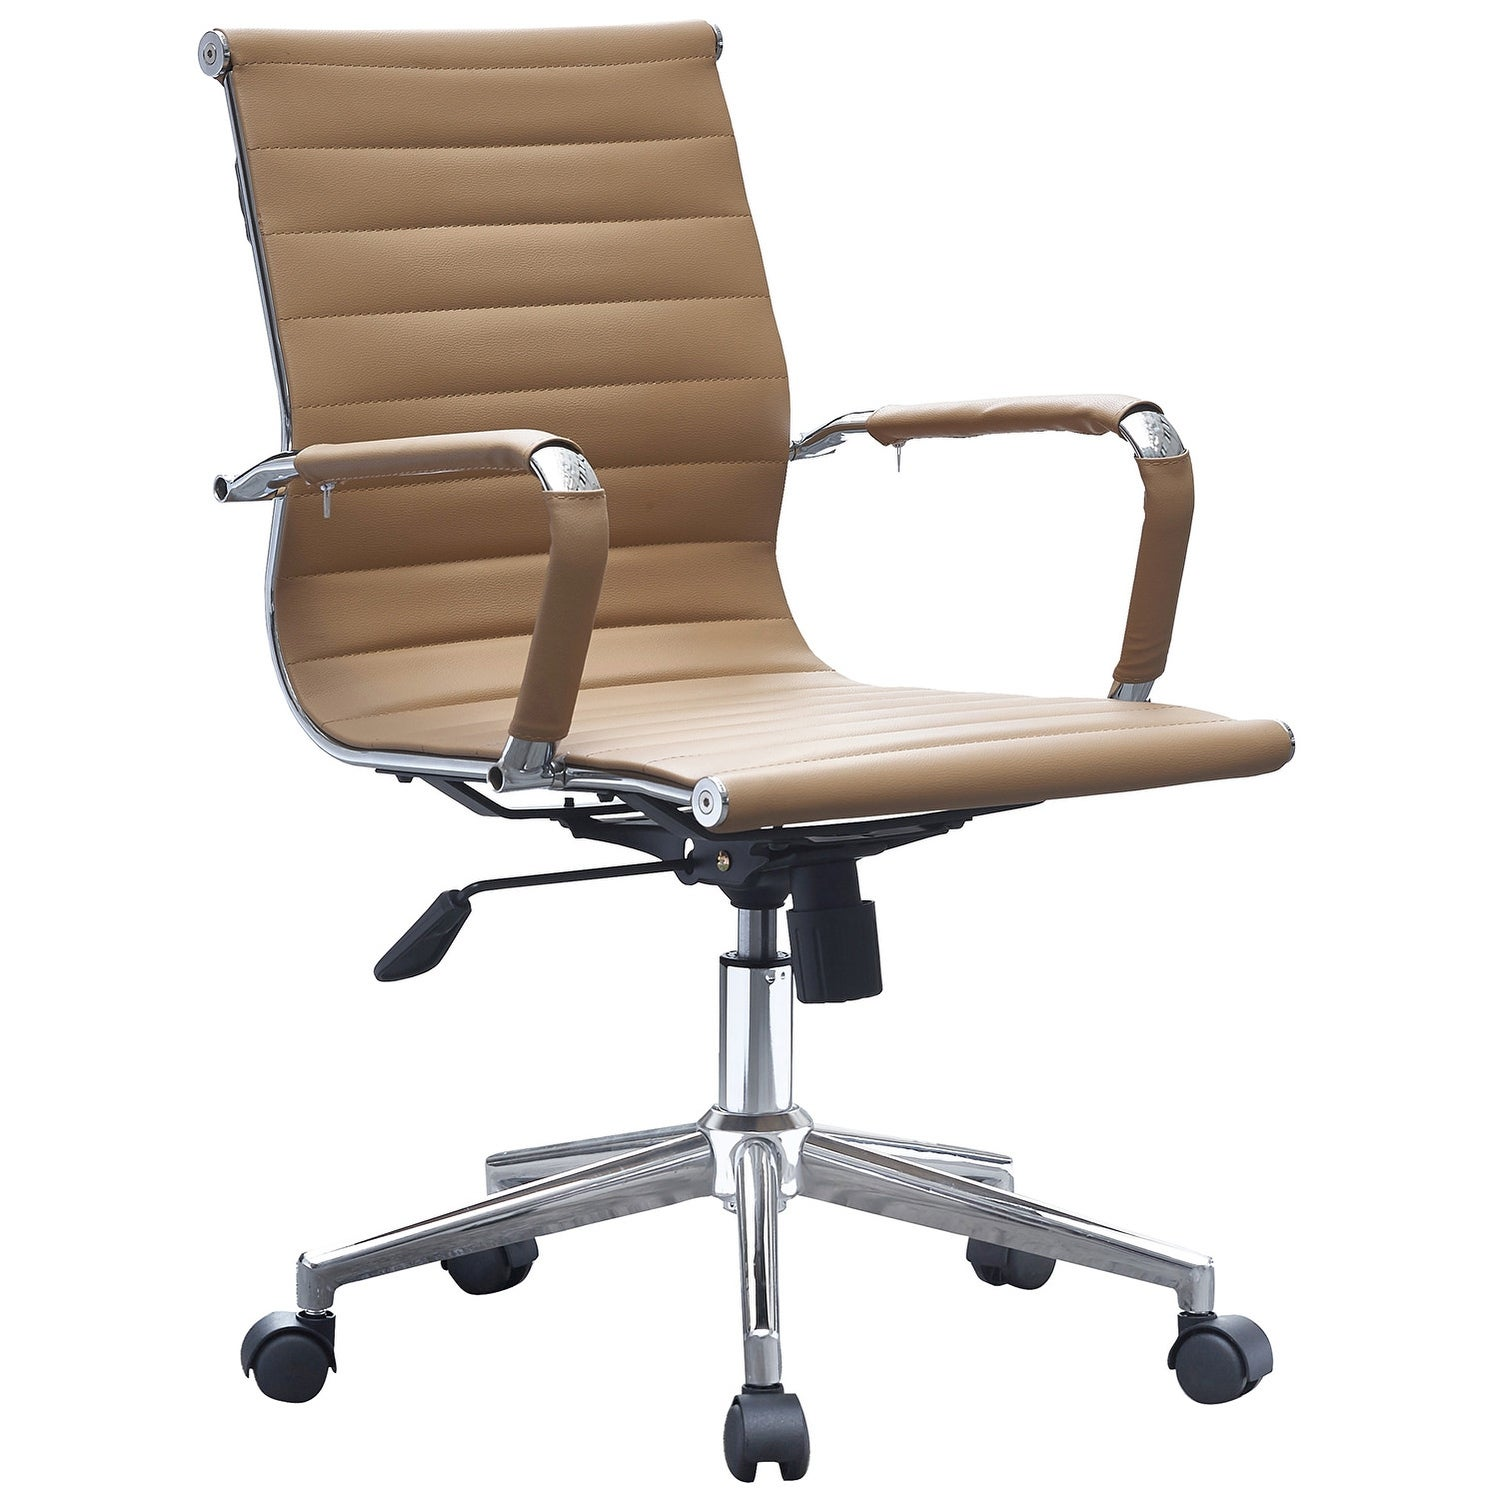 Shop 2xhome Office Chair Mid Back Tan Ergonomic Adjustable Height Swivel With Padded Arms Wheels Work Executive Task On Sale Overstock 13769424